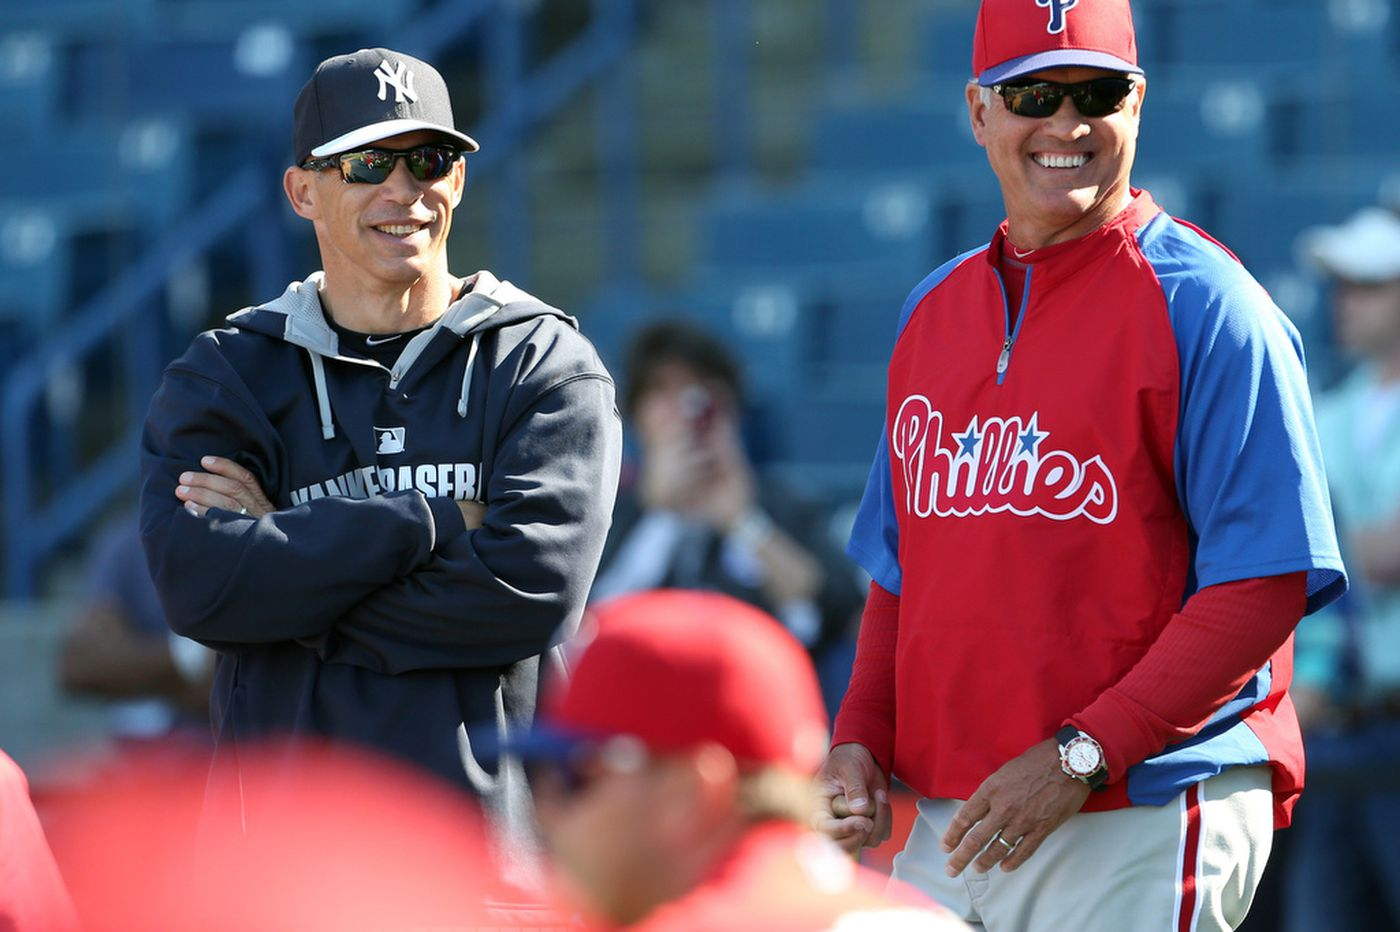 The file on Joe Girardi, the Phillies' new manager